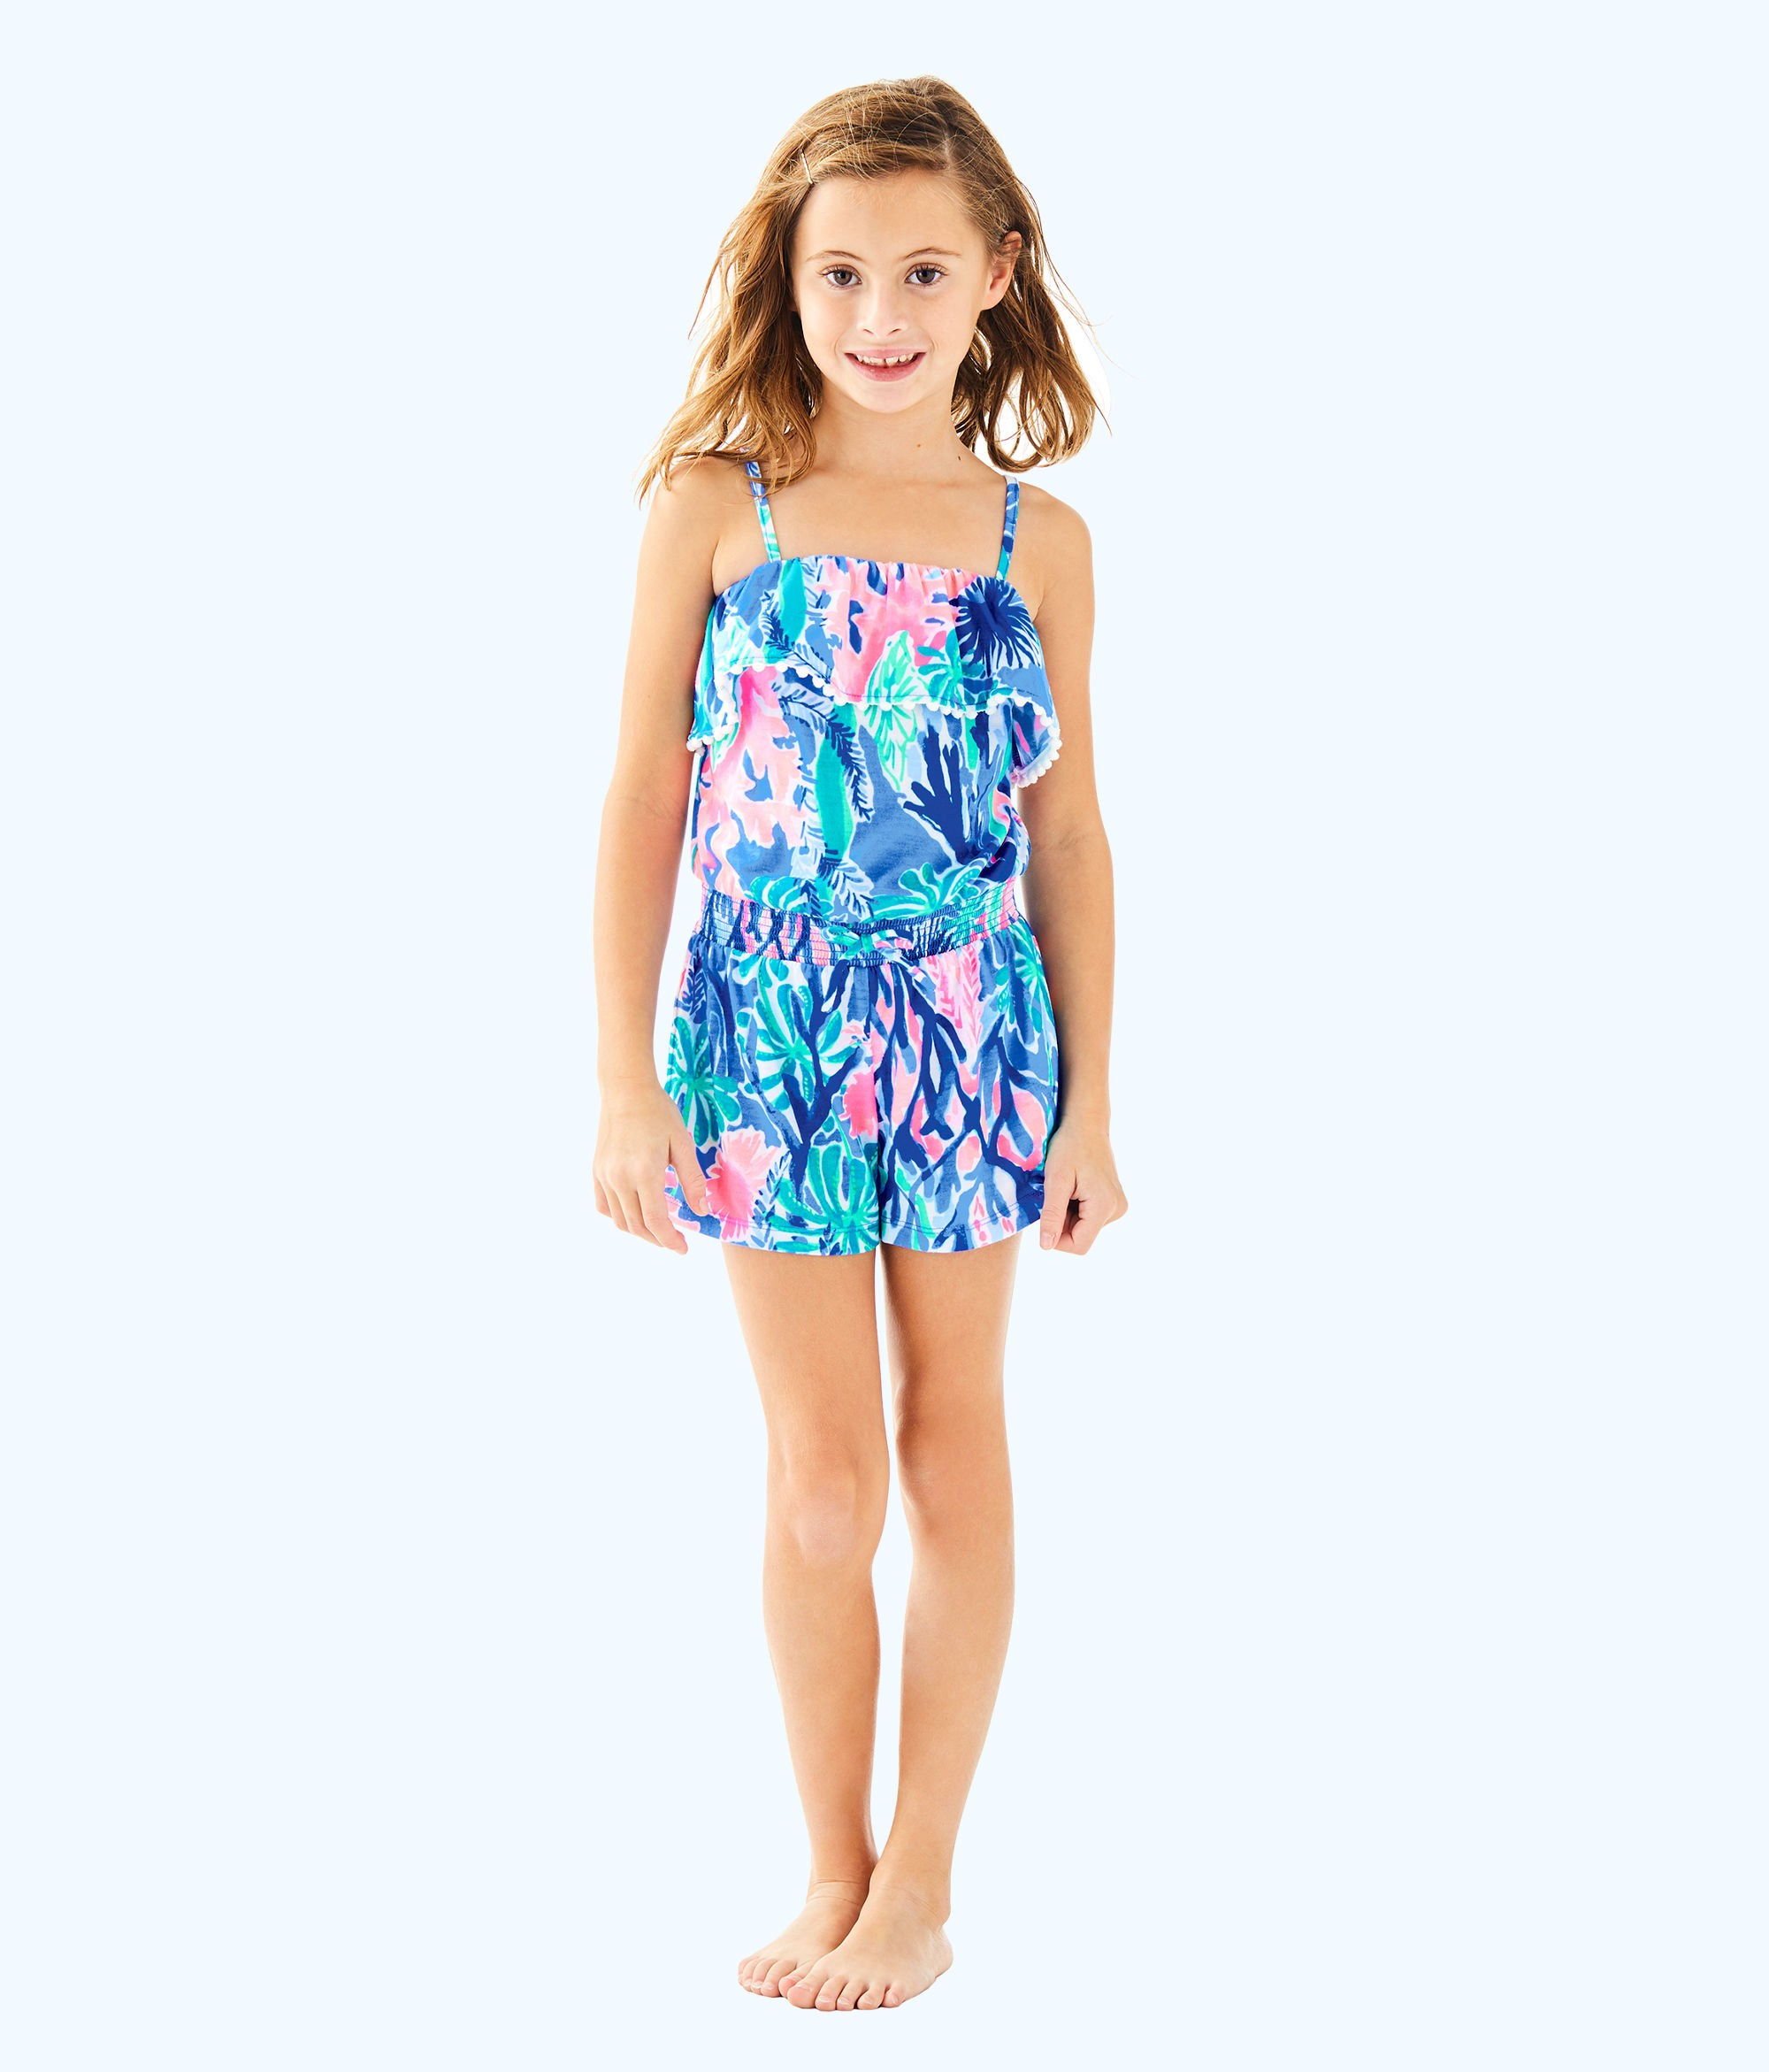 3693eb6d932d27 Lilly Pulitzer Girls Leonie Romper - S | Products | Knitted romper ...